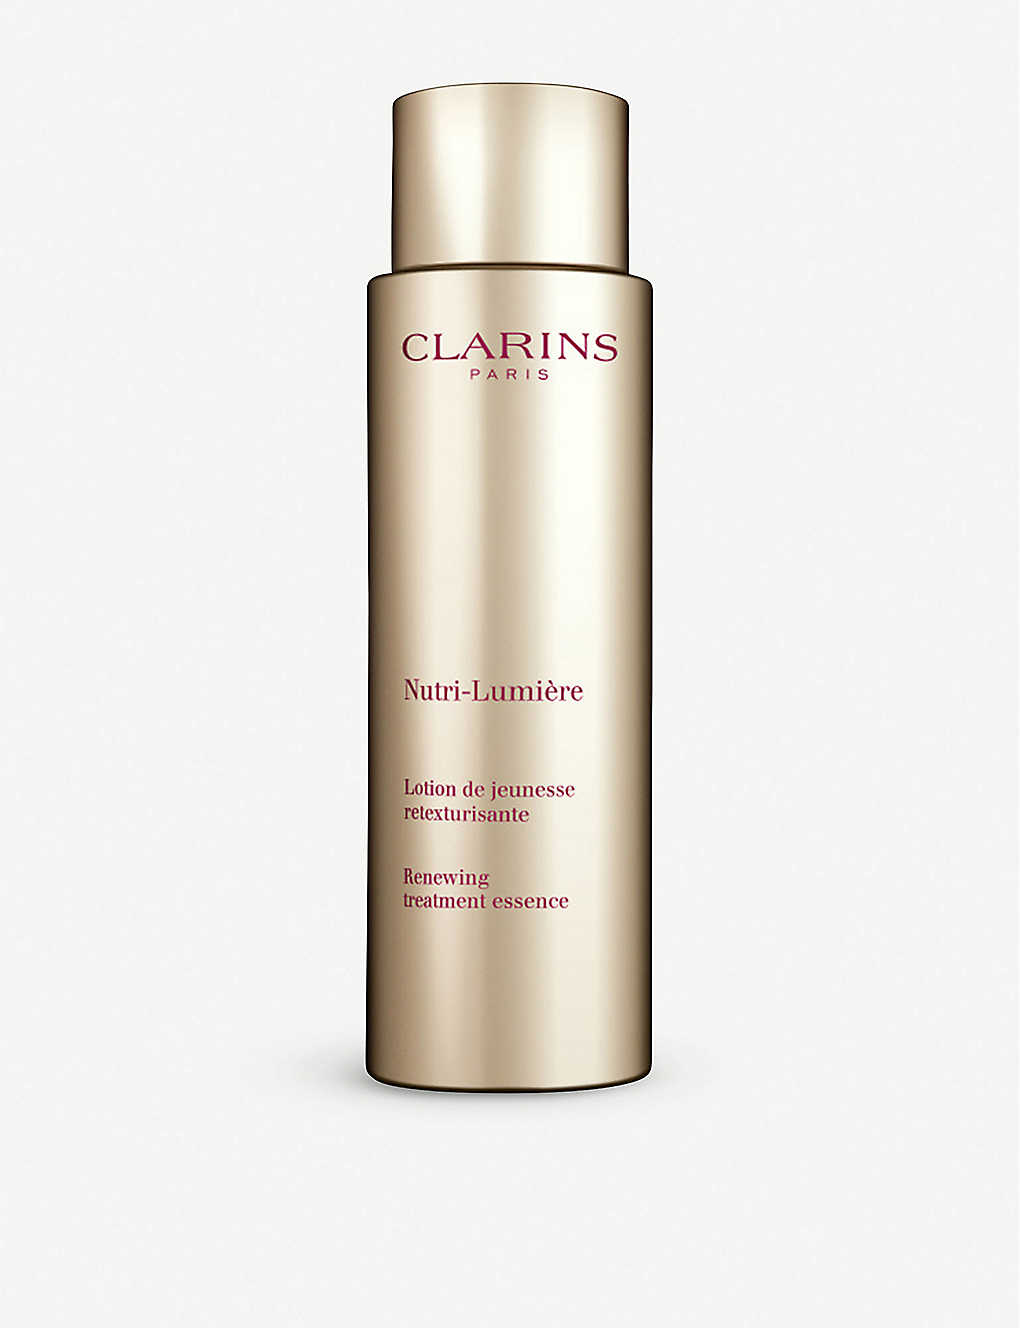 CLARINS: Nutri-Lumière treatment essence 200ml